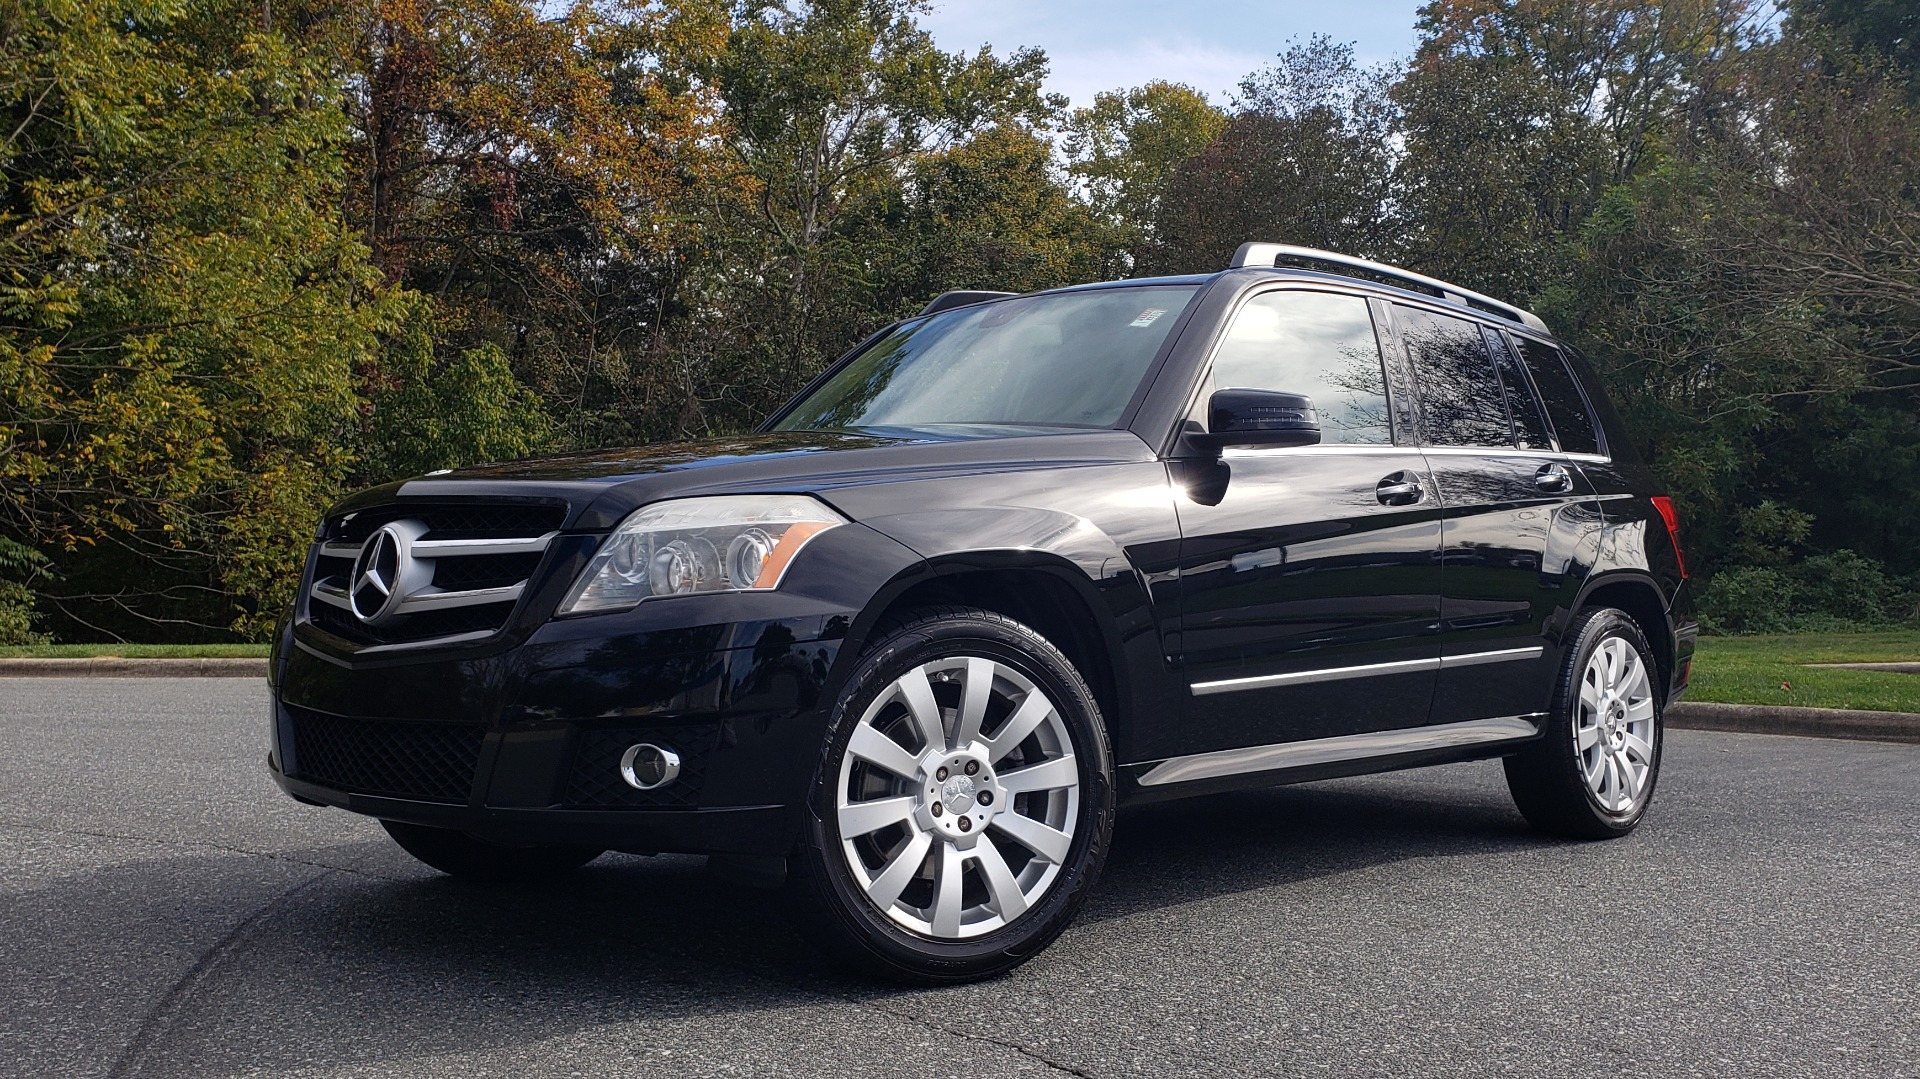 Used 2012 Mercedes-Benz GLK-CLASS GLK 350 4MATIC / PREM PKG / SUNROOF / KEYLESS-GO / NAV / REARVIEW for sale Sold at Formula Imports in Charlotte NC 28227 1